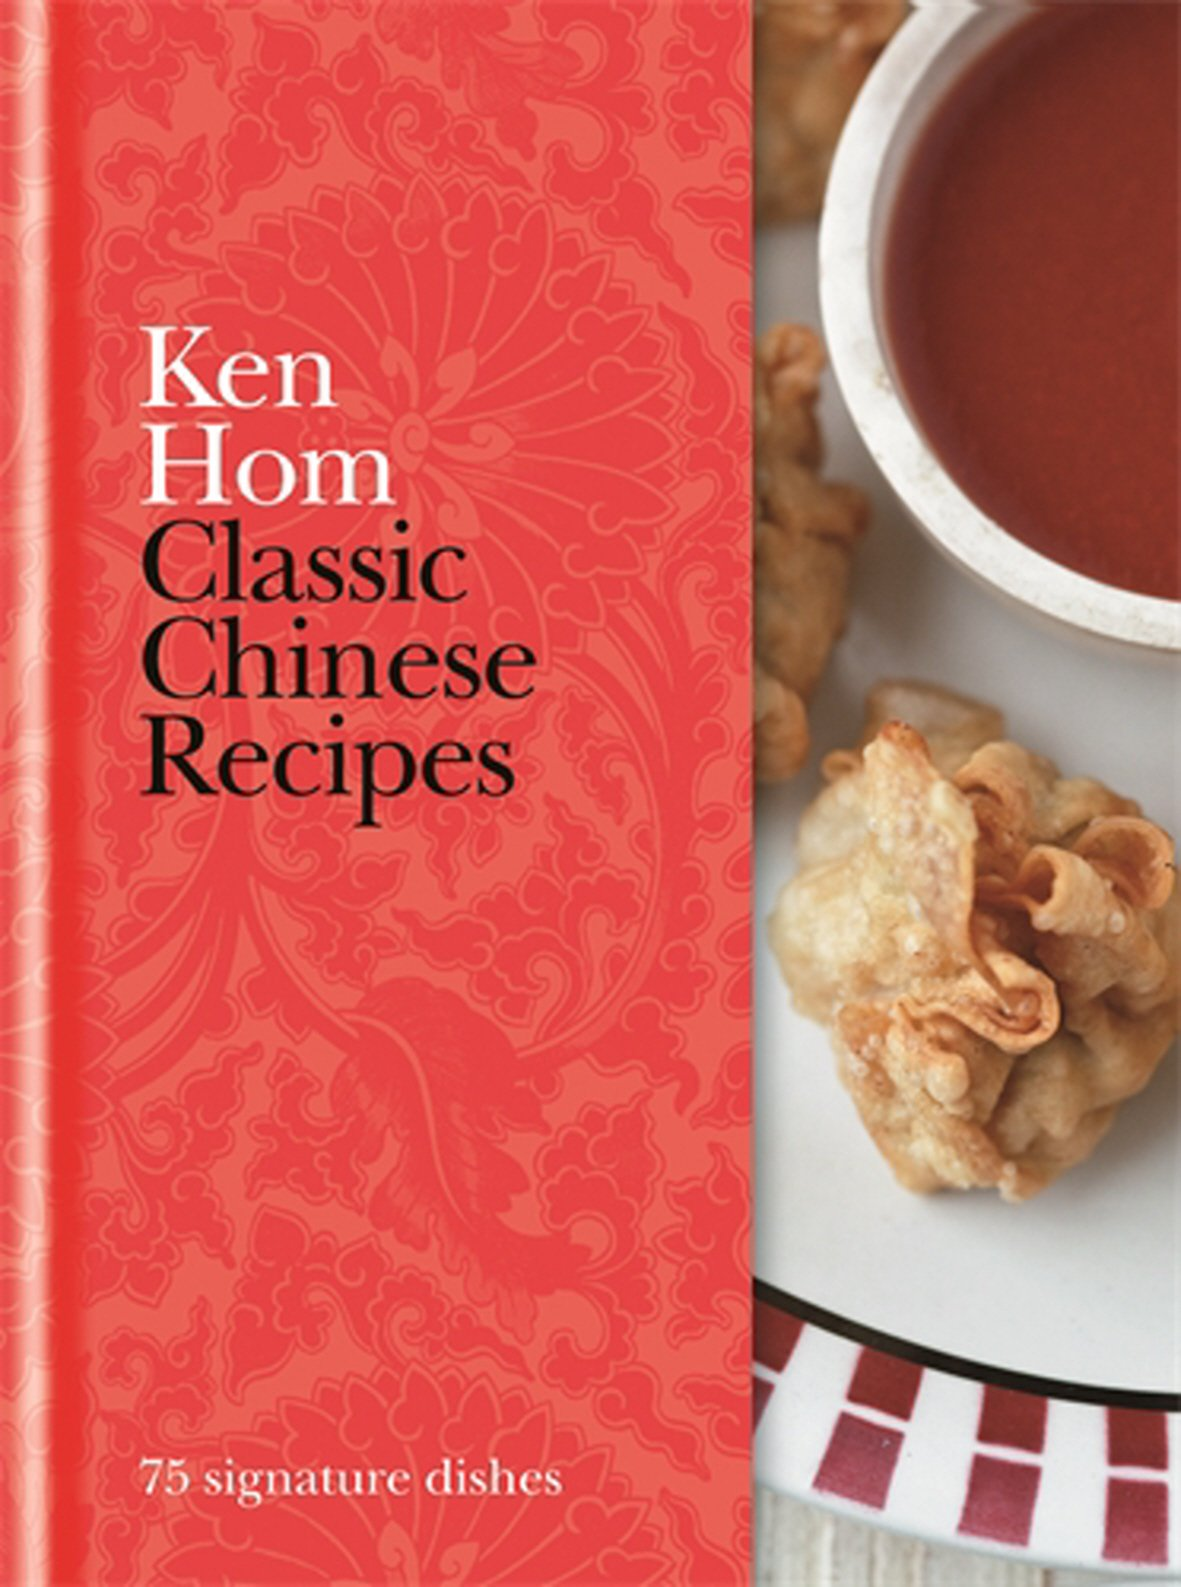 Classic Chinese Recipes: 75 signature dishes